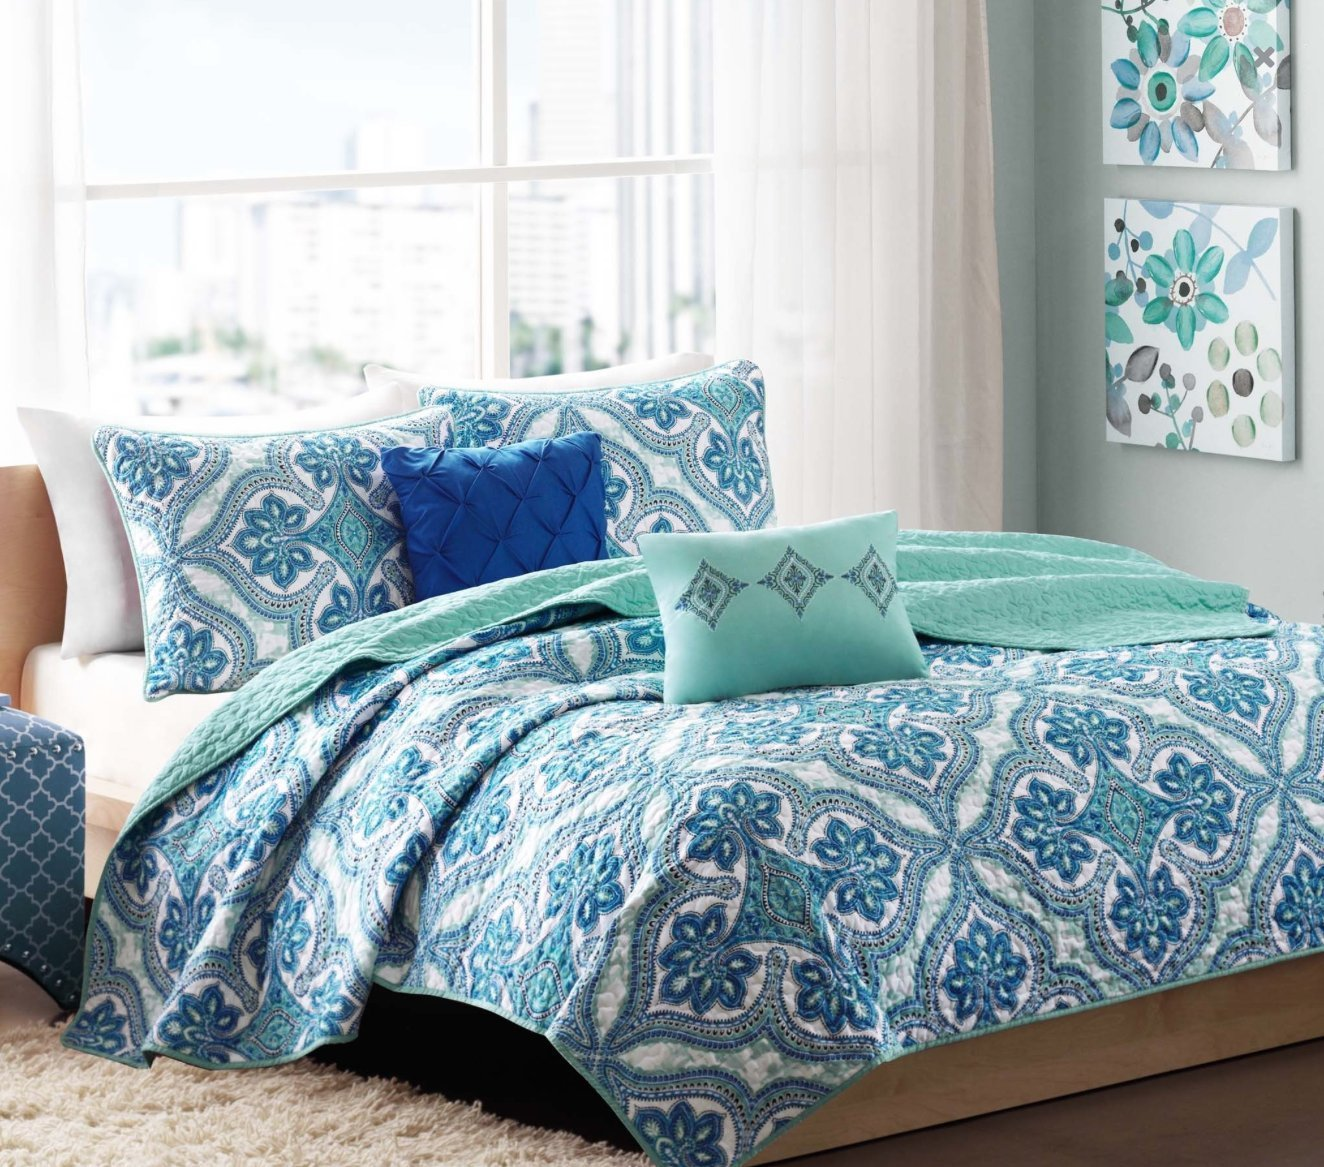 queen utagriculture bedspreads on kohls sets com and at quilt bed quilts walmart sale